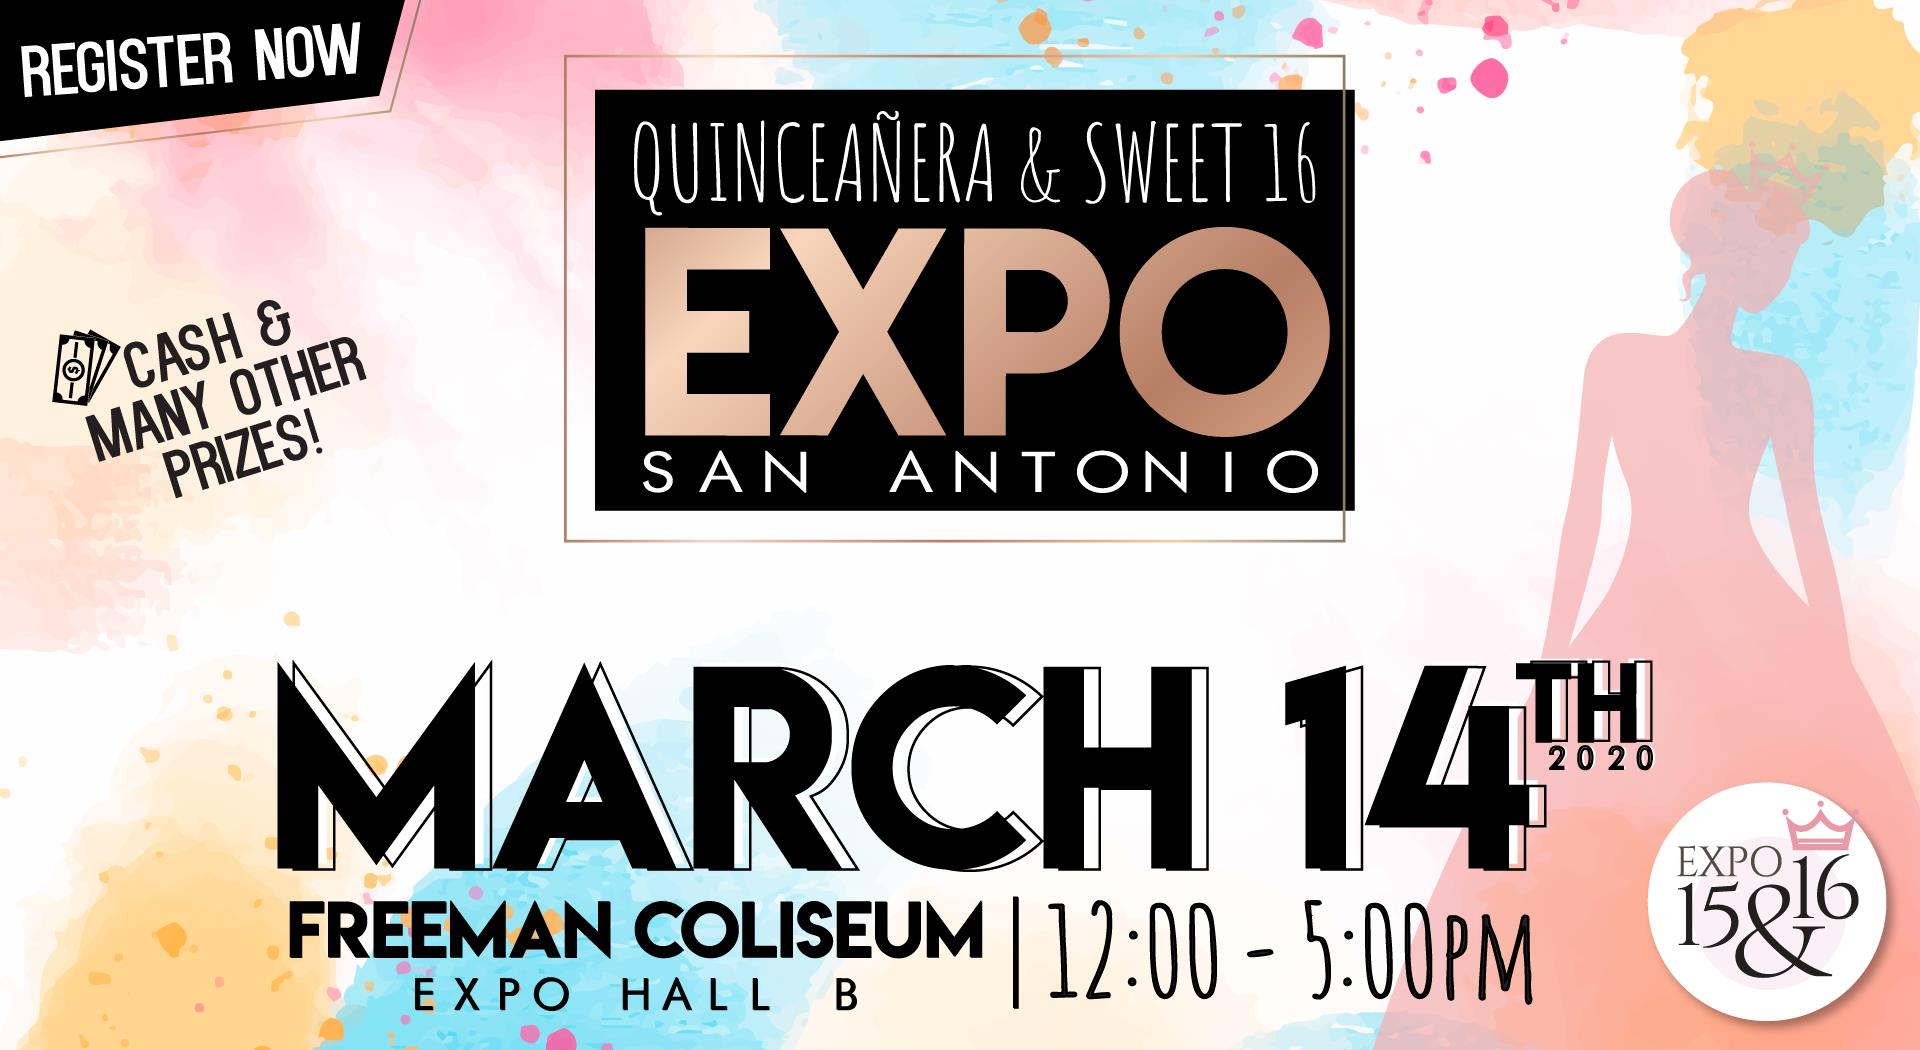 Flyer Expo Quinceanera San Antonio March 14th